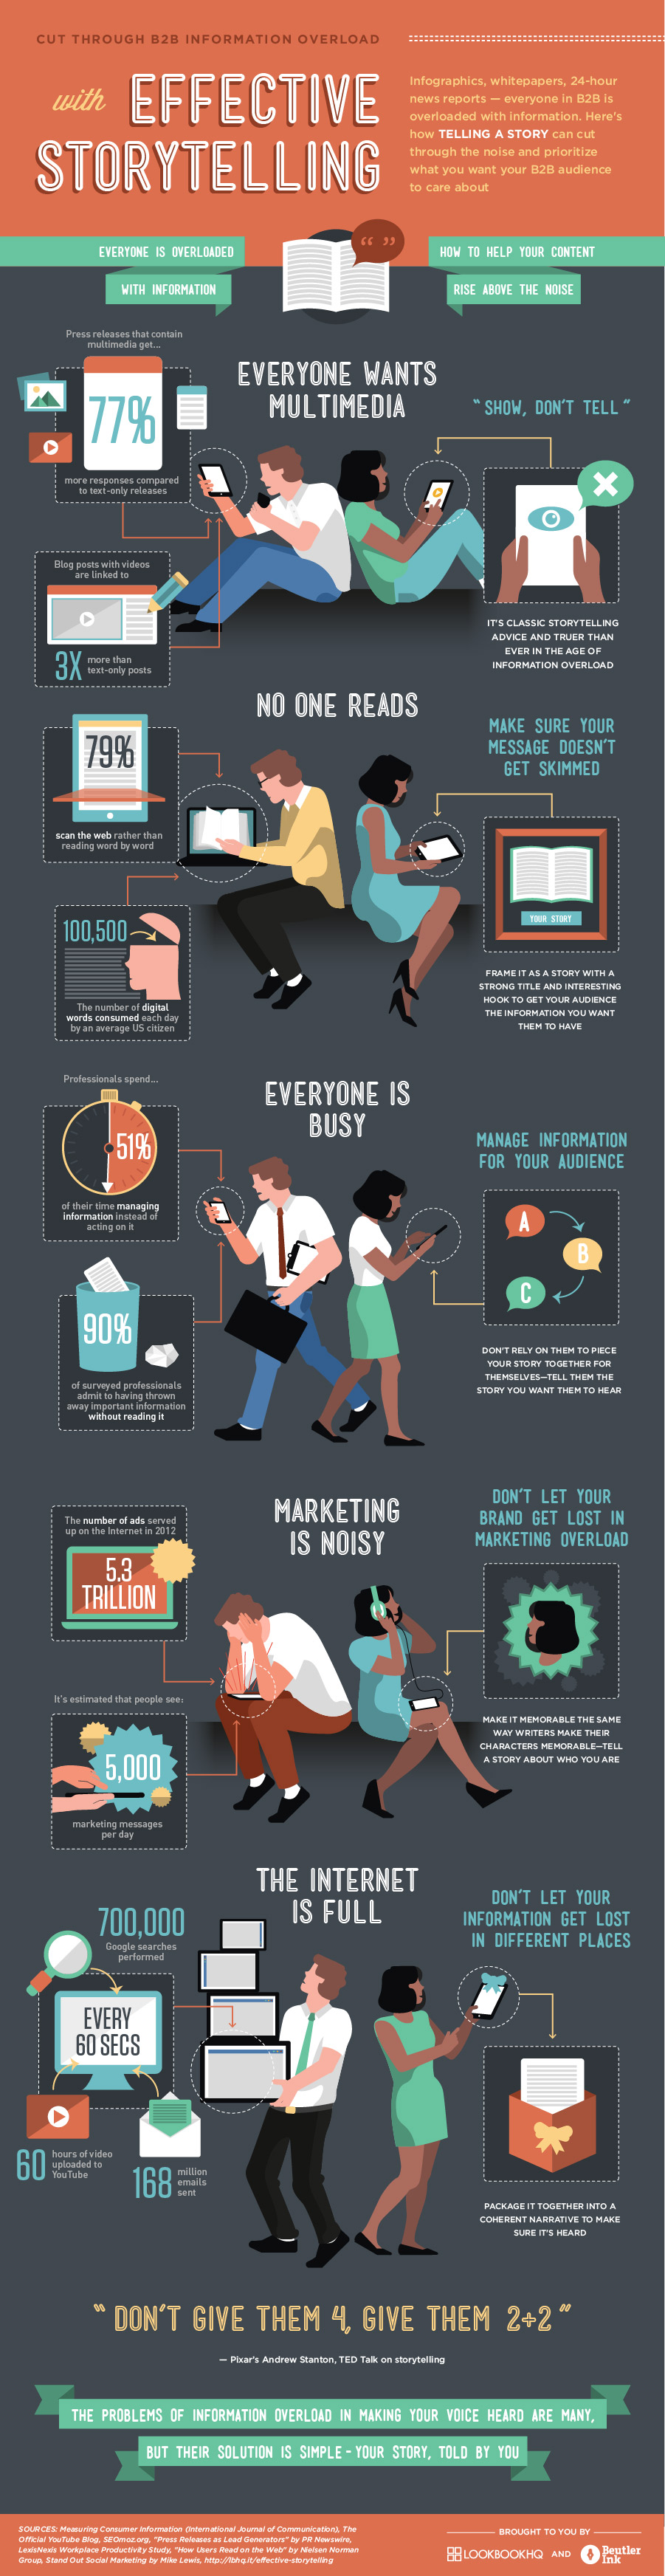 storytelling_infographic